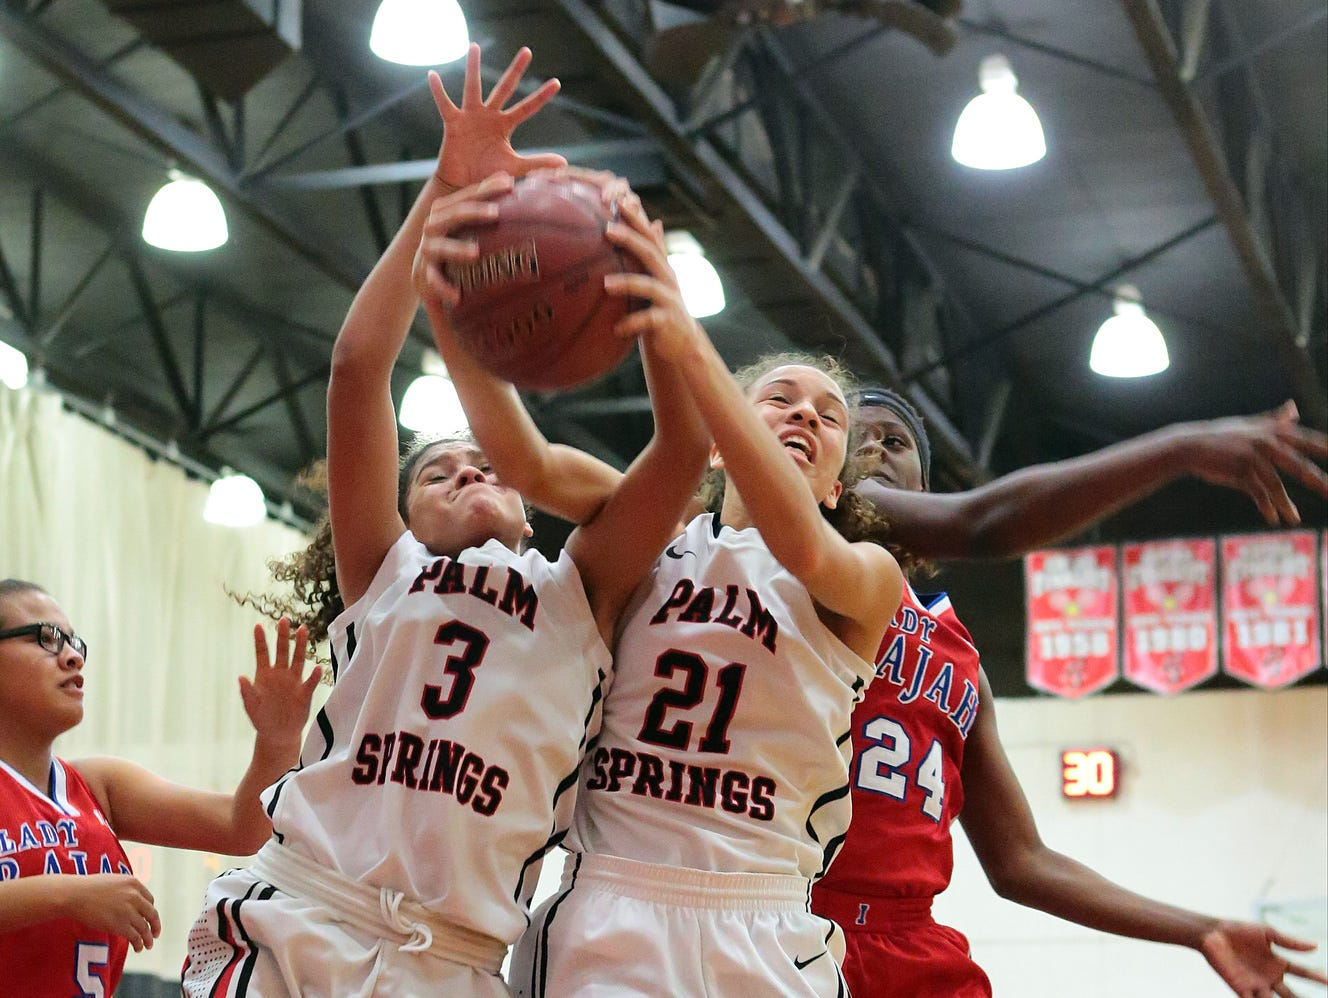 Palm Springs players Hannah Wright (3) and Joana Adams (21) both pull down a rebound against Indio during a Desert Valley League girls basketball game on Wednesday, January 14, 2015 in Palm Springs. Indio won, 57-44, and remain undefeated in league play.